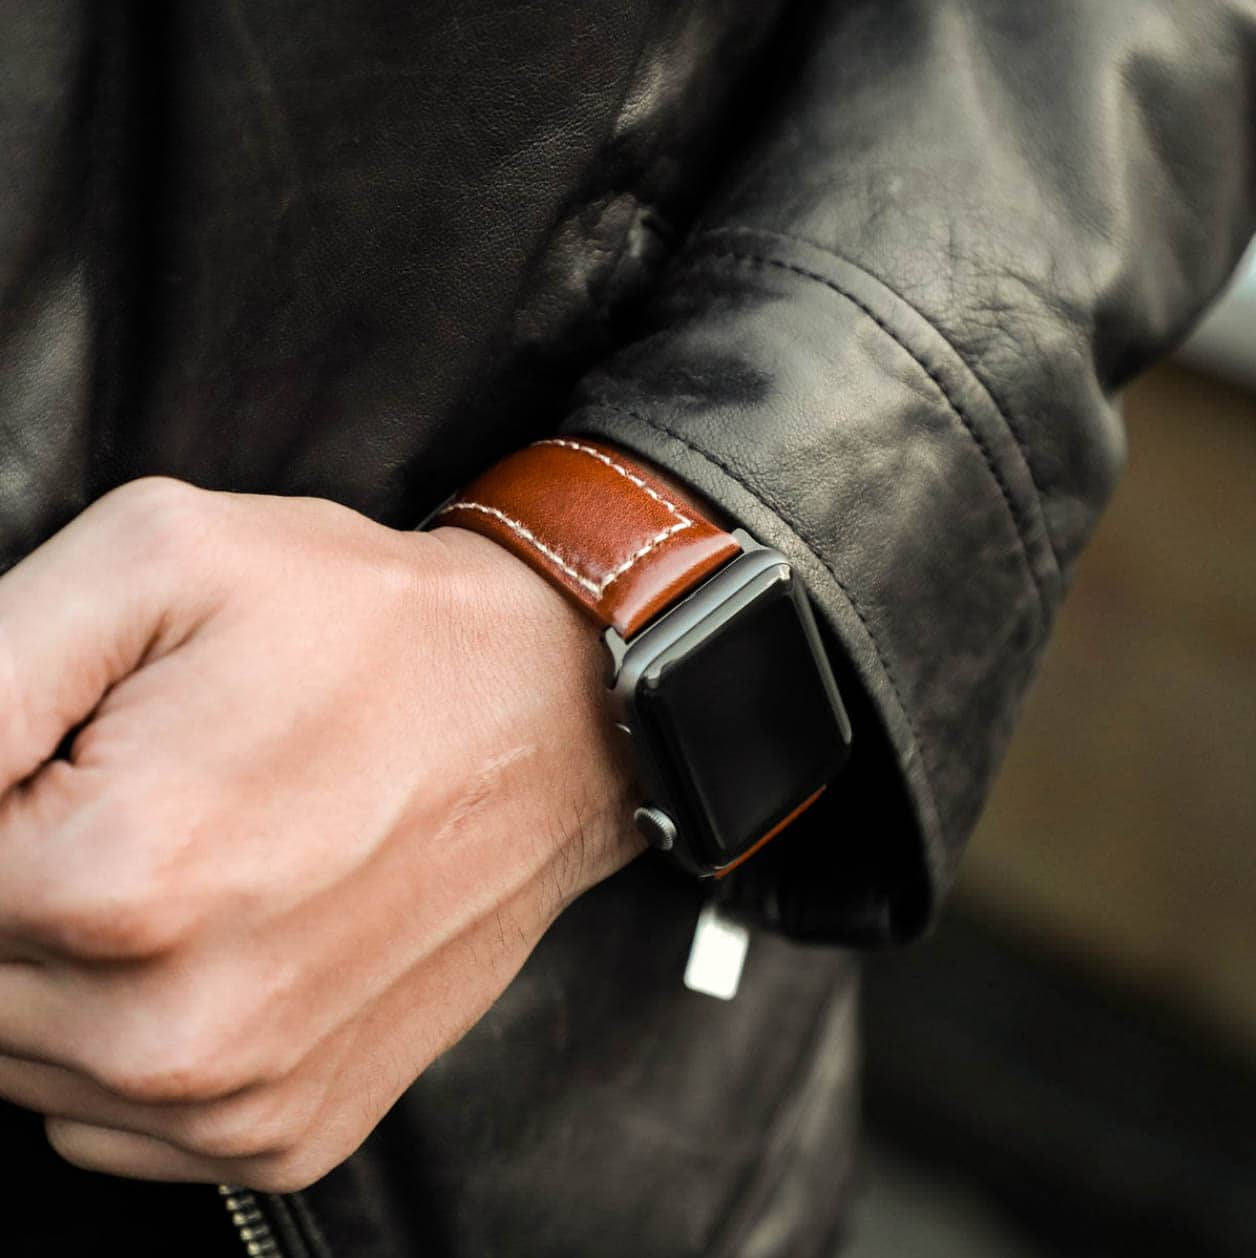 Rugged, beautiful Italian leather expertly crafted into an exceptional watch band worthy of your Series 4.